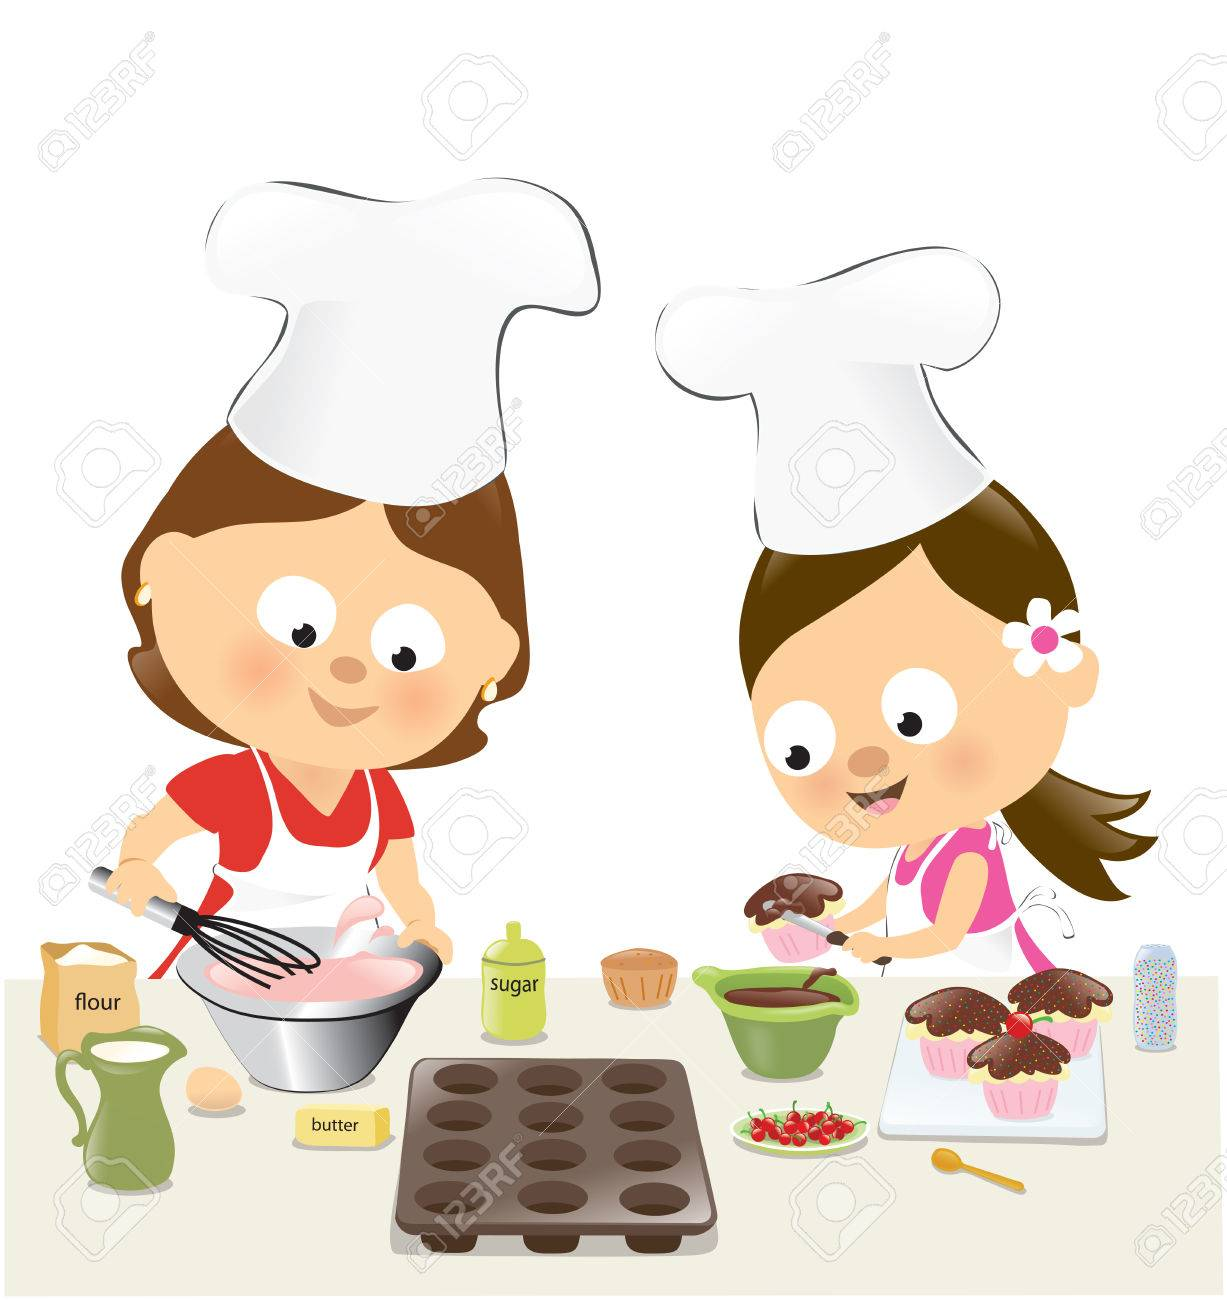 Mother and daughter baking cupcakes.